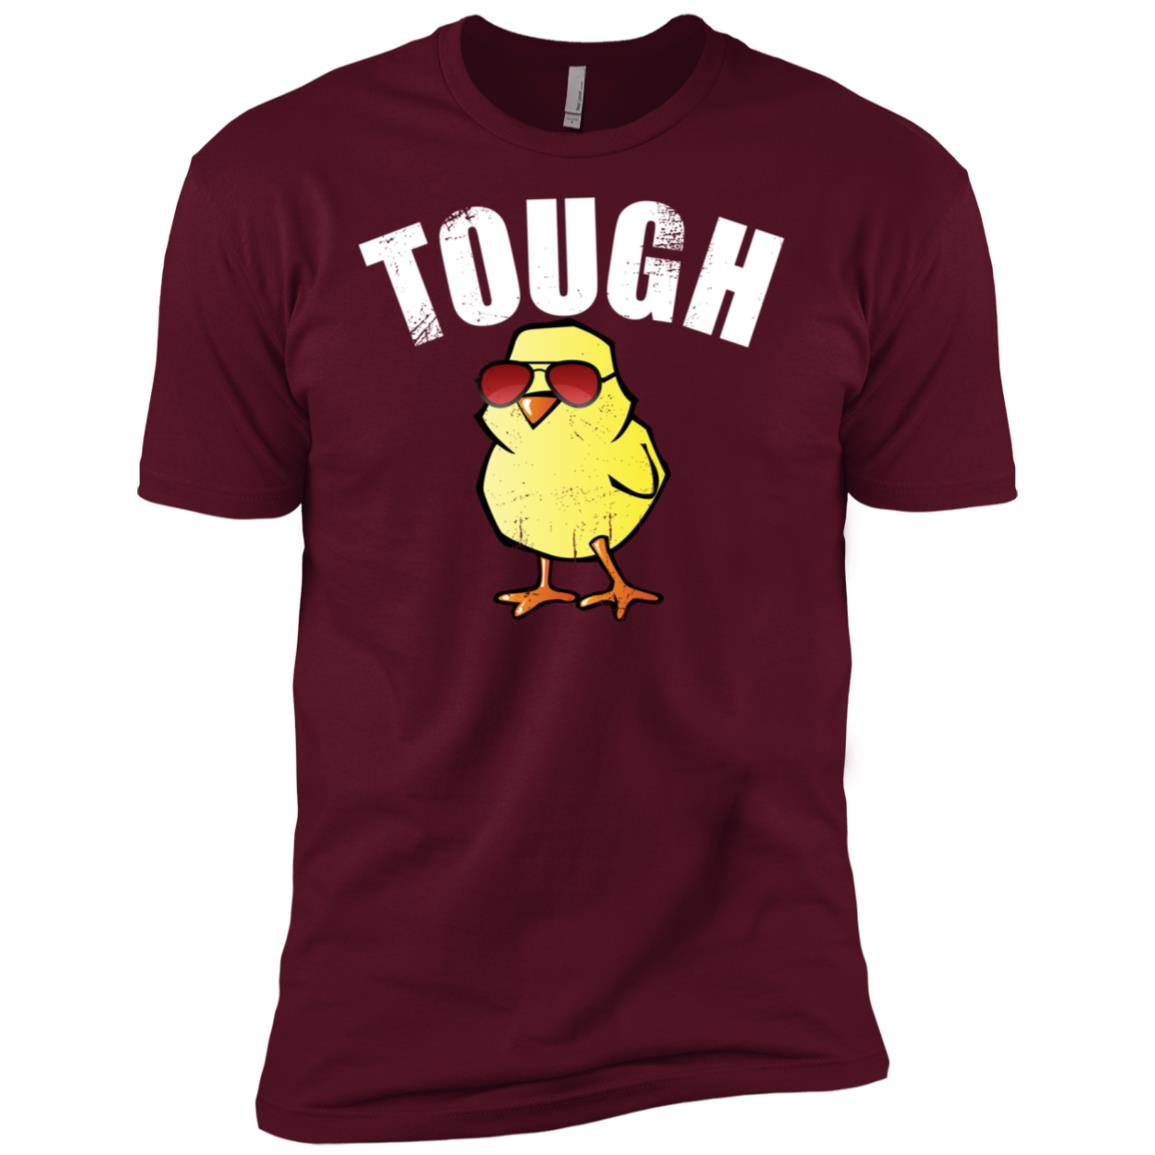 Tough Chick Funny Chick Cute Baby Chick Men Short Sleeve T-Shirt